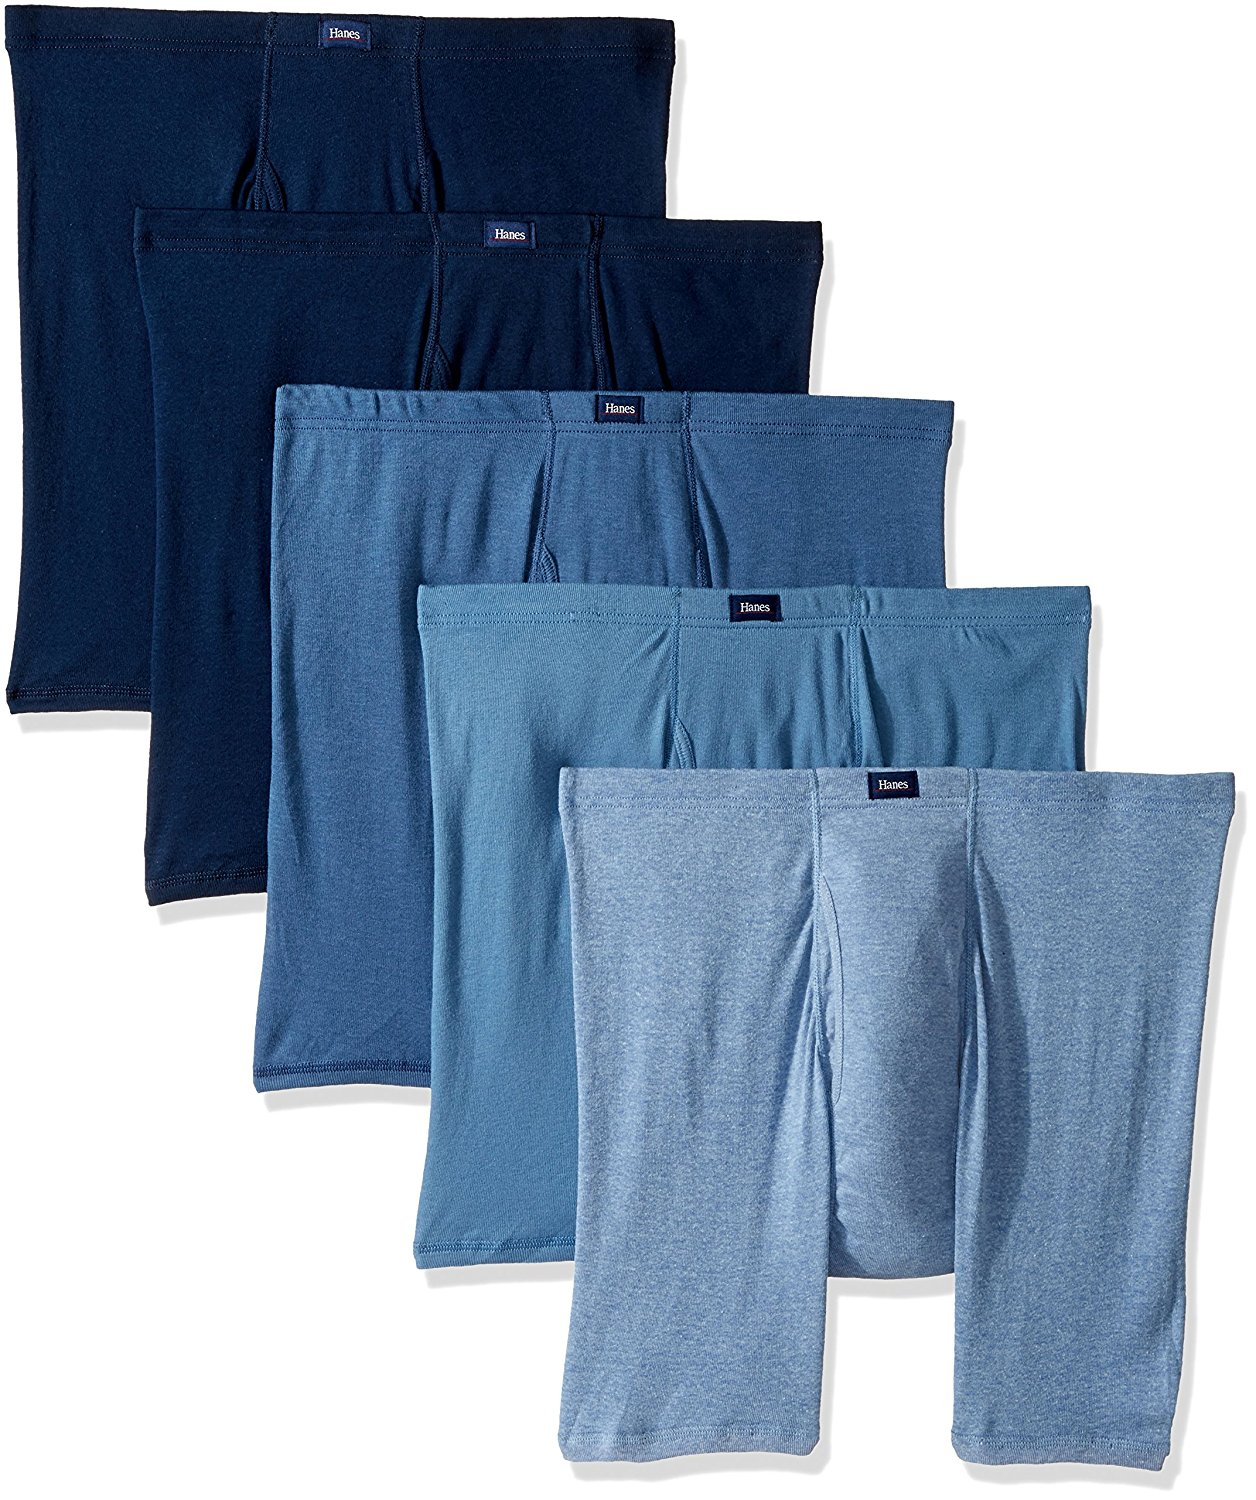 Hanes Ultimate Men's 5 Pack Ultimate Comfort Soft Waistband Boxer Briefs, Blue, Medium